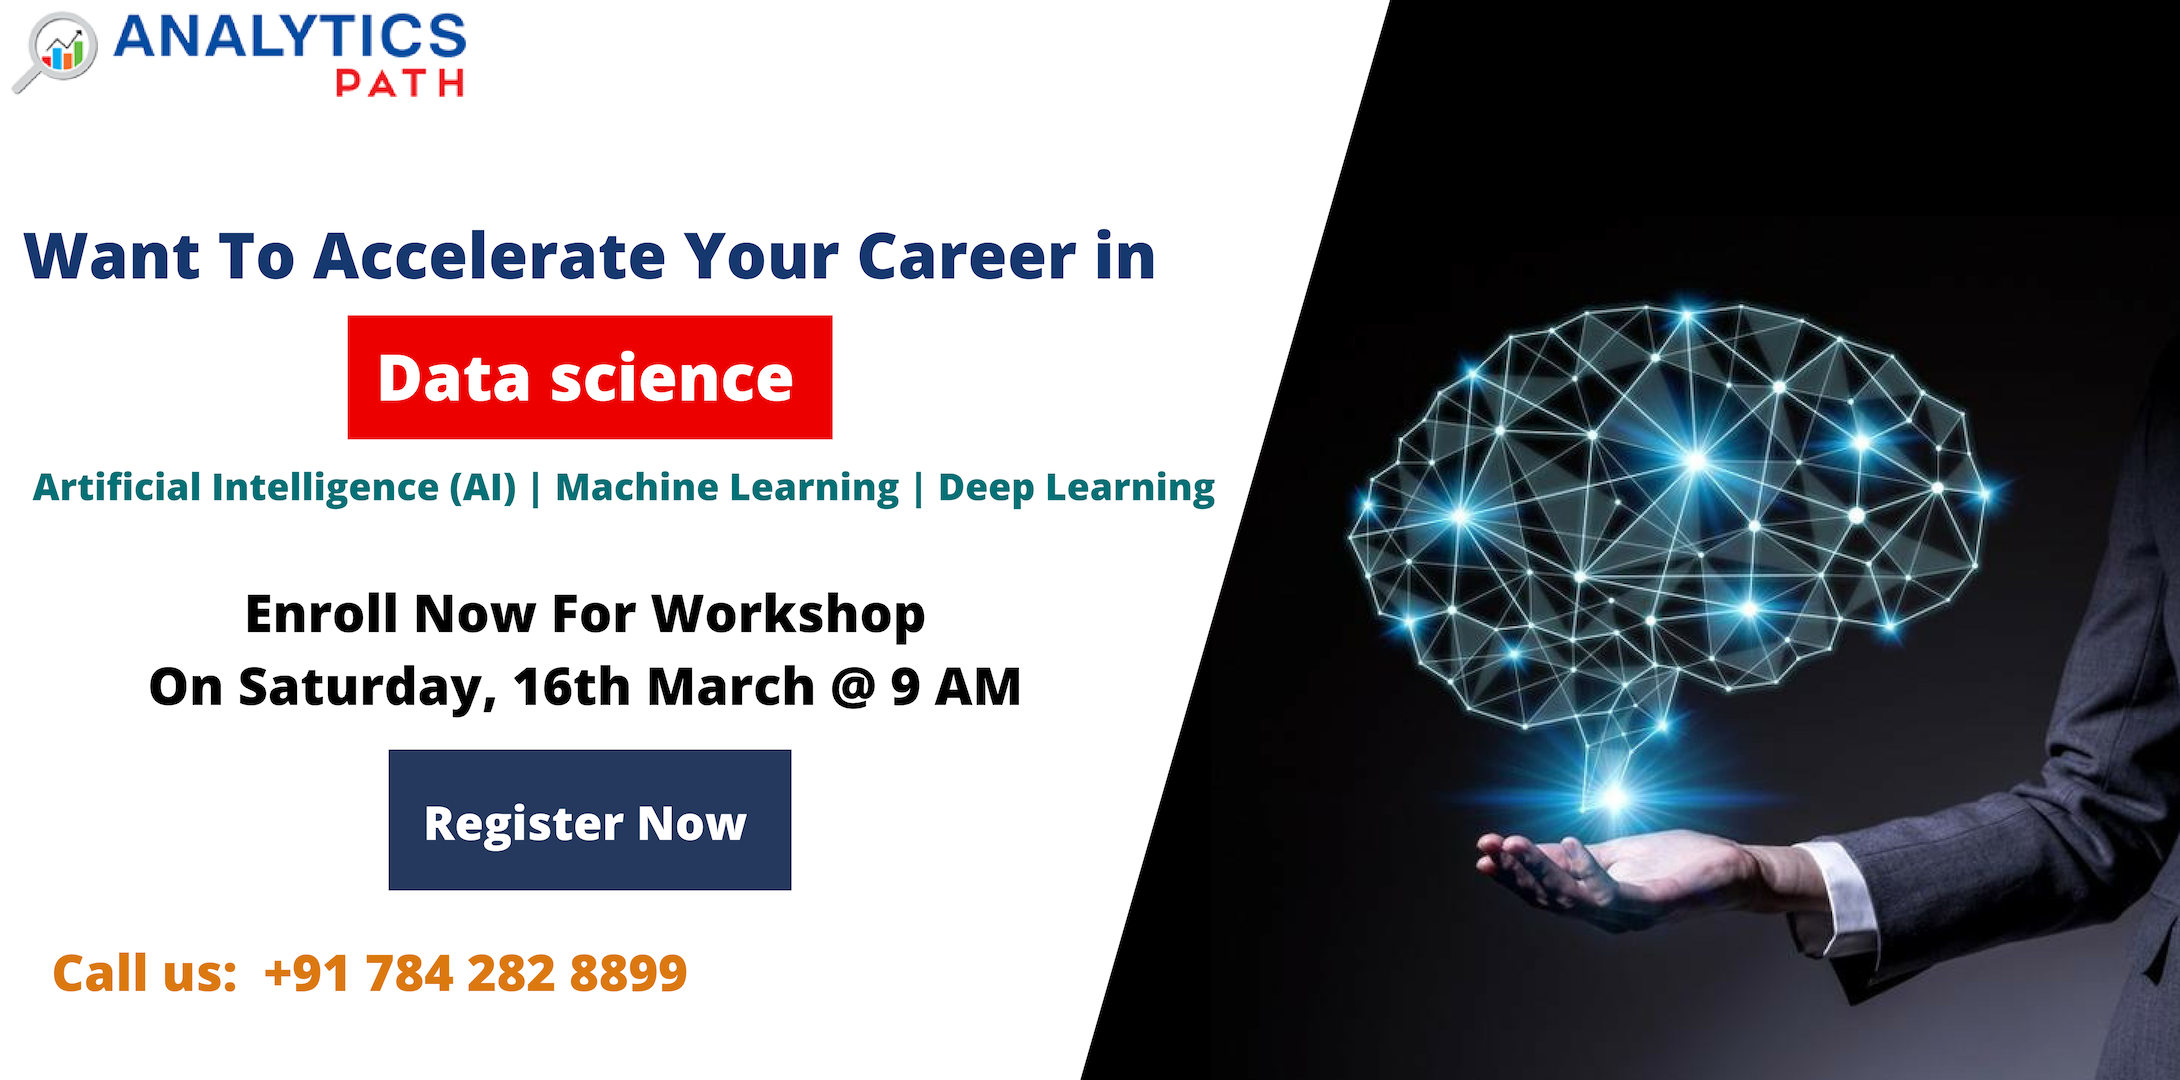 Attend Free Workshop On Data Science Training By Real Time Experts From IIT And IIM At Analytics Path Scheduled On 16th March, 9 AM, In Hyderabad, Hyderabad, Telangana, India